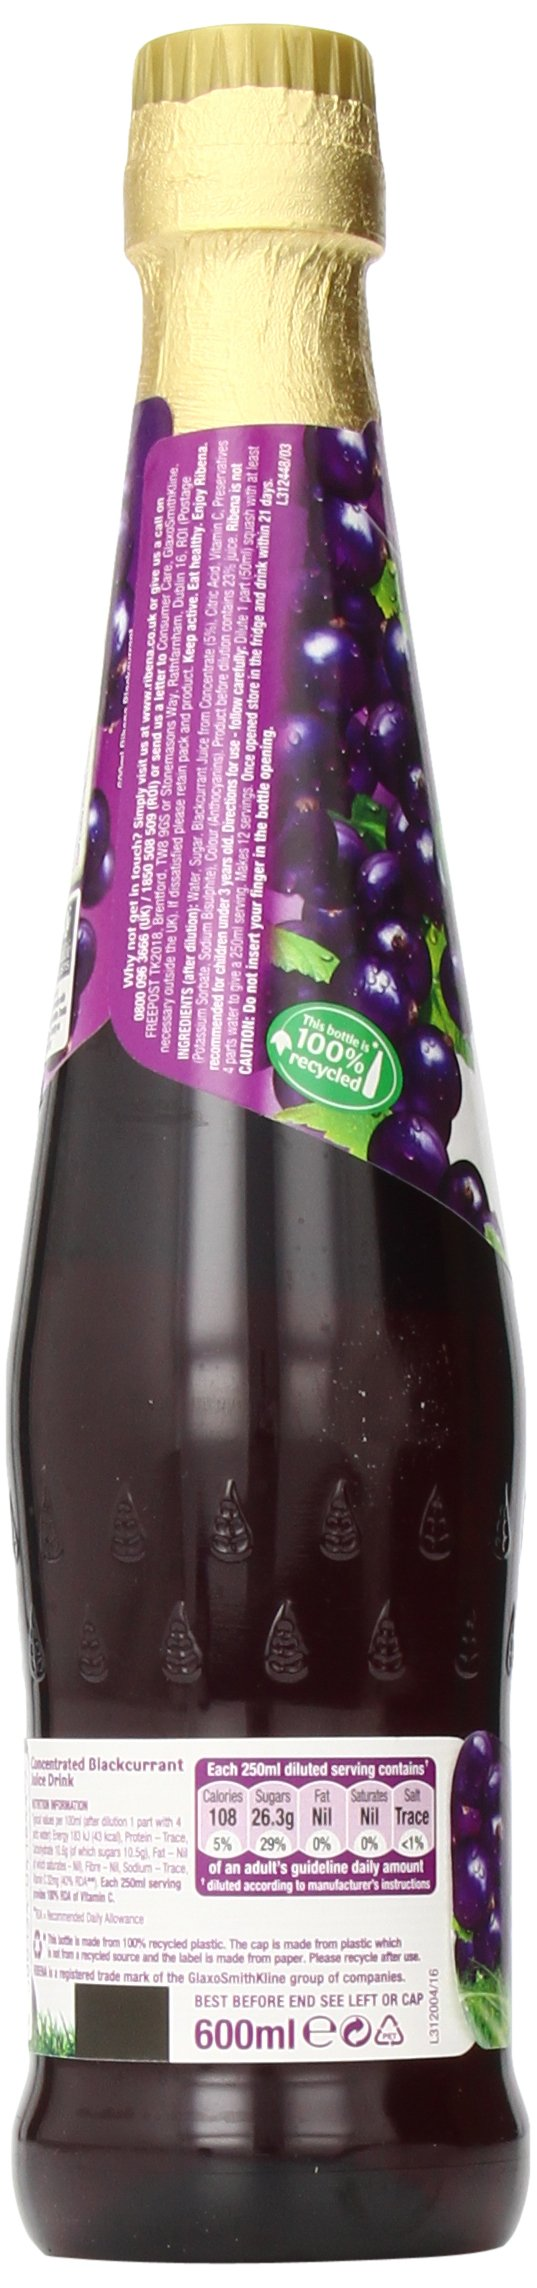 Ribena Original Blackcurrant Drink, 600 ml Bottle (Pack of 12) by Ribena (Image #8)